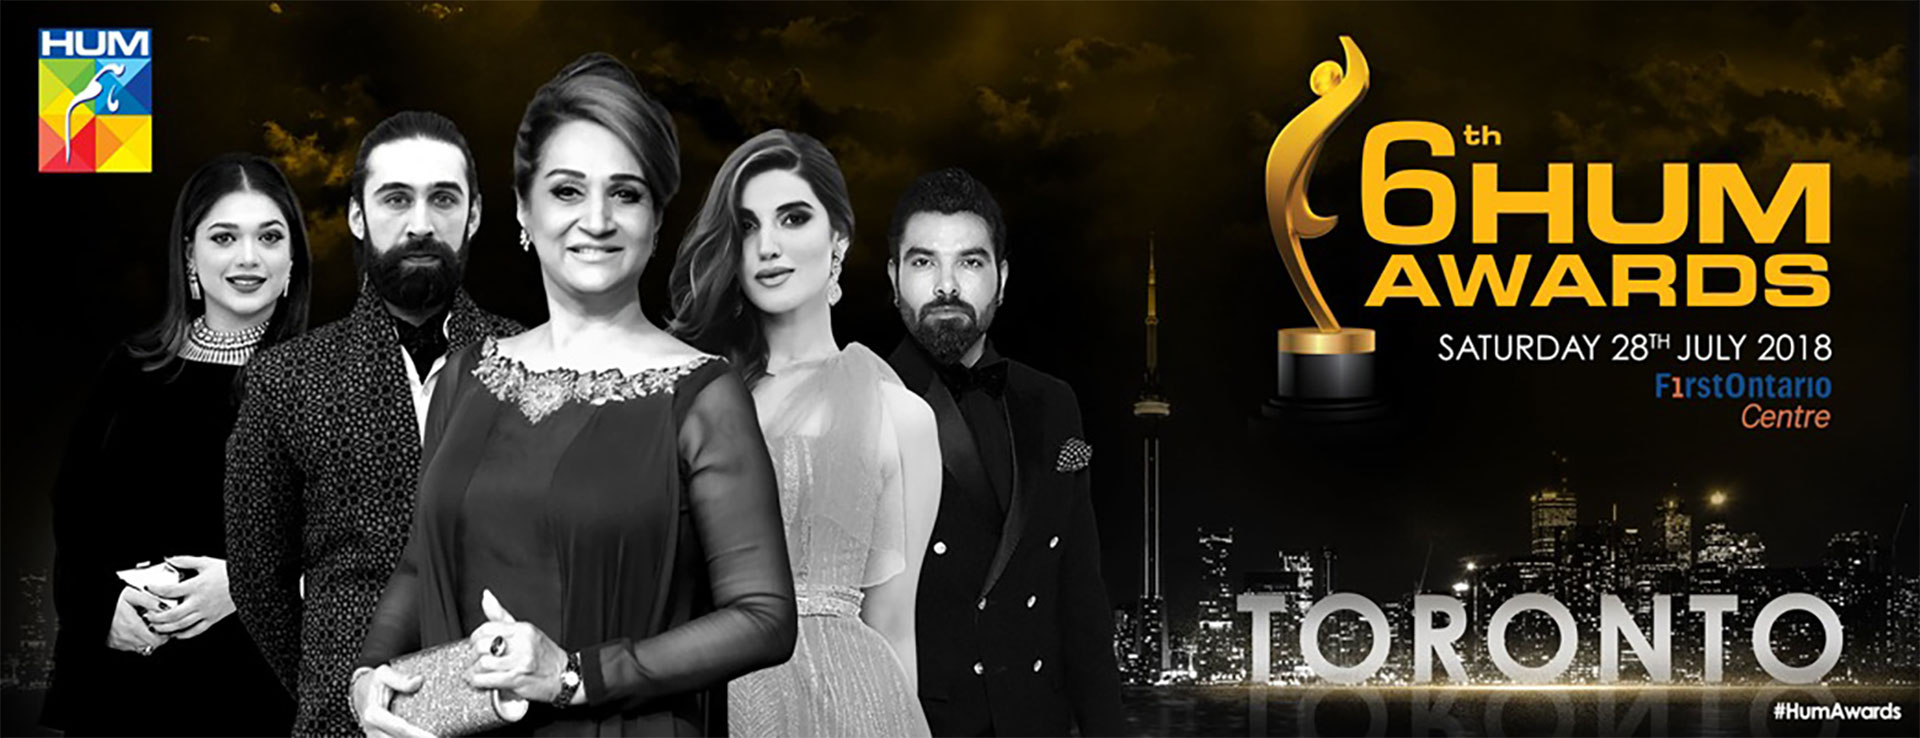 Hum Tv response to the award show controversy